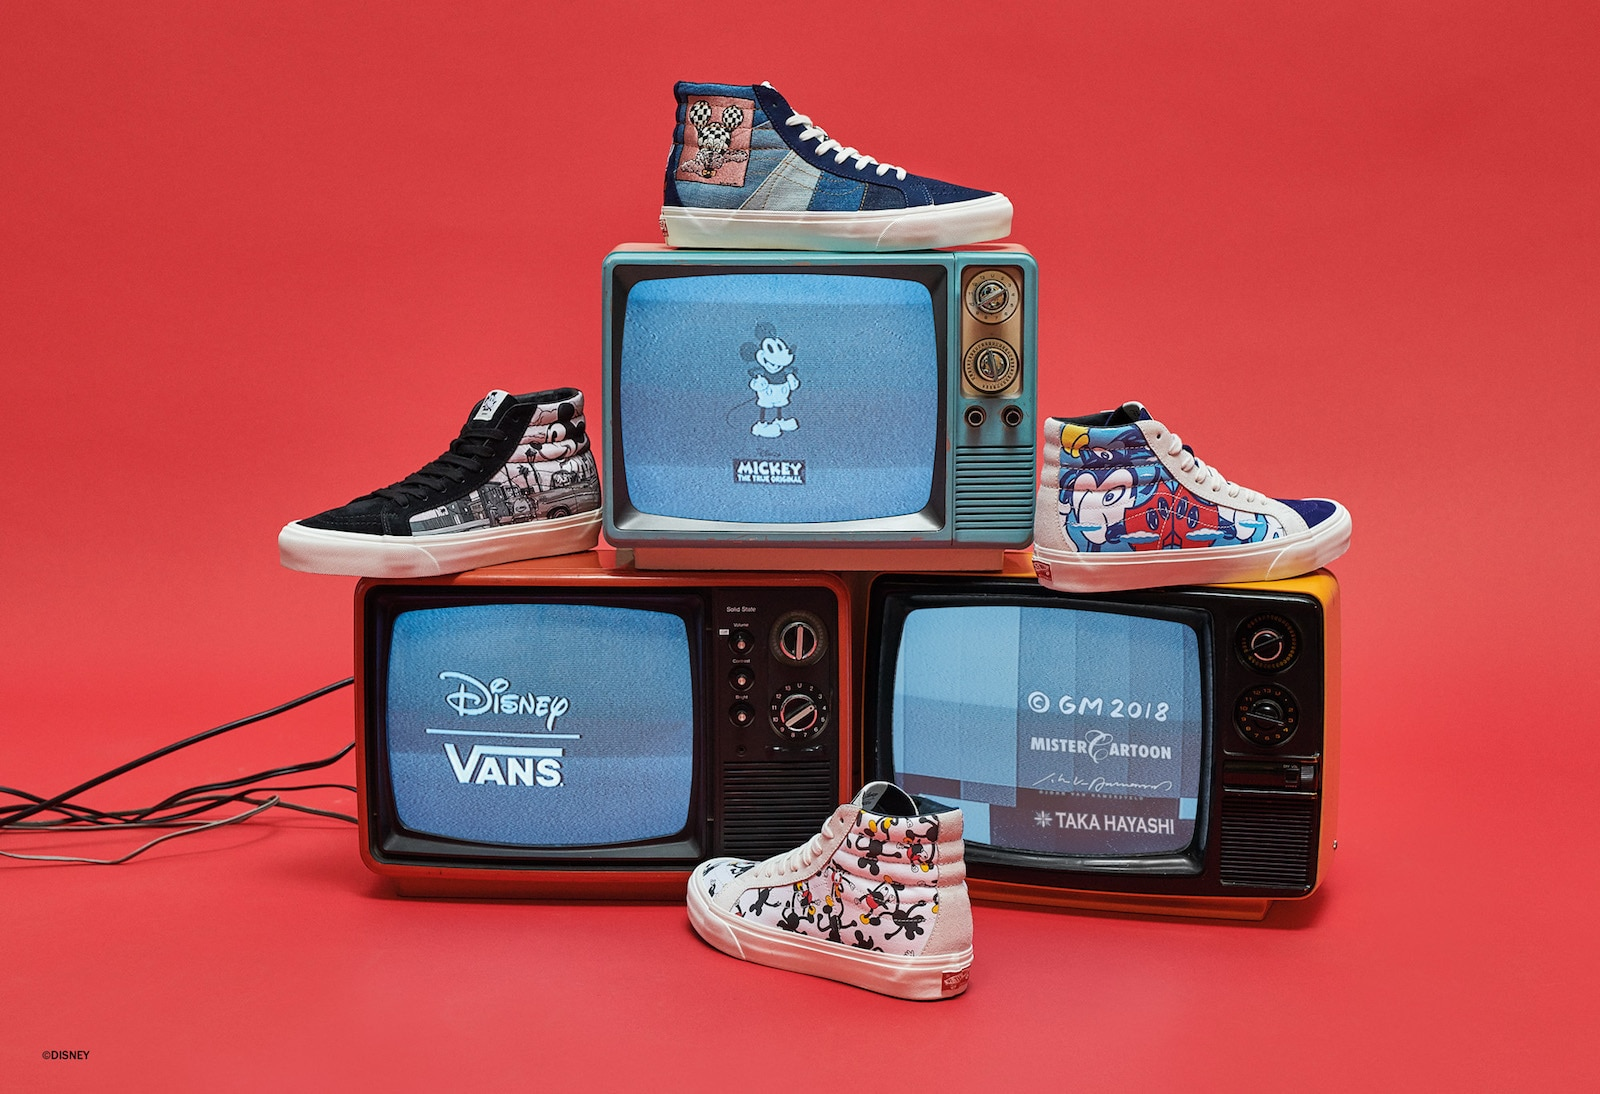 Sneakers from the Vault by Vans Mickey Mouse collection